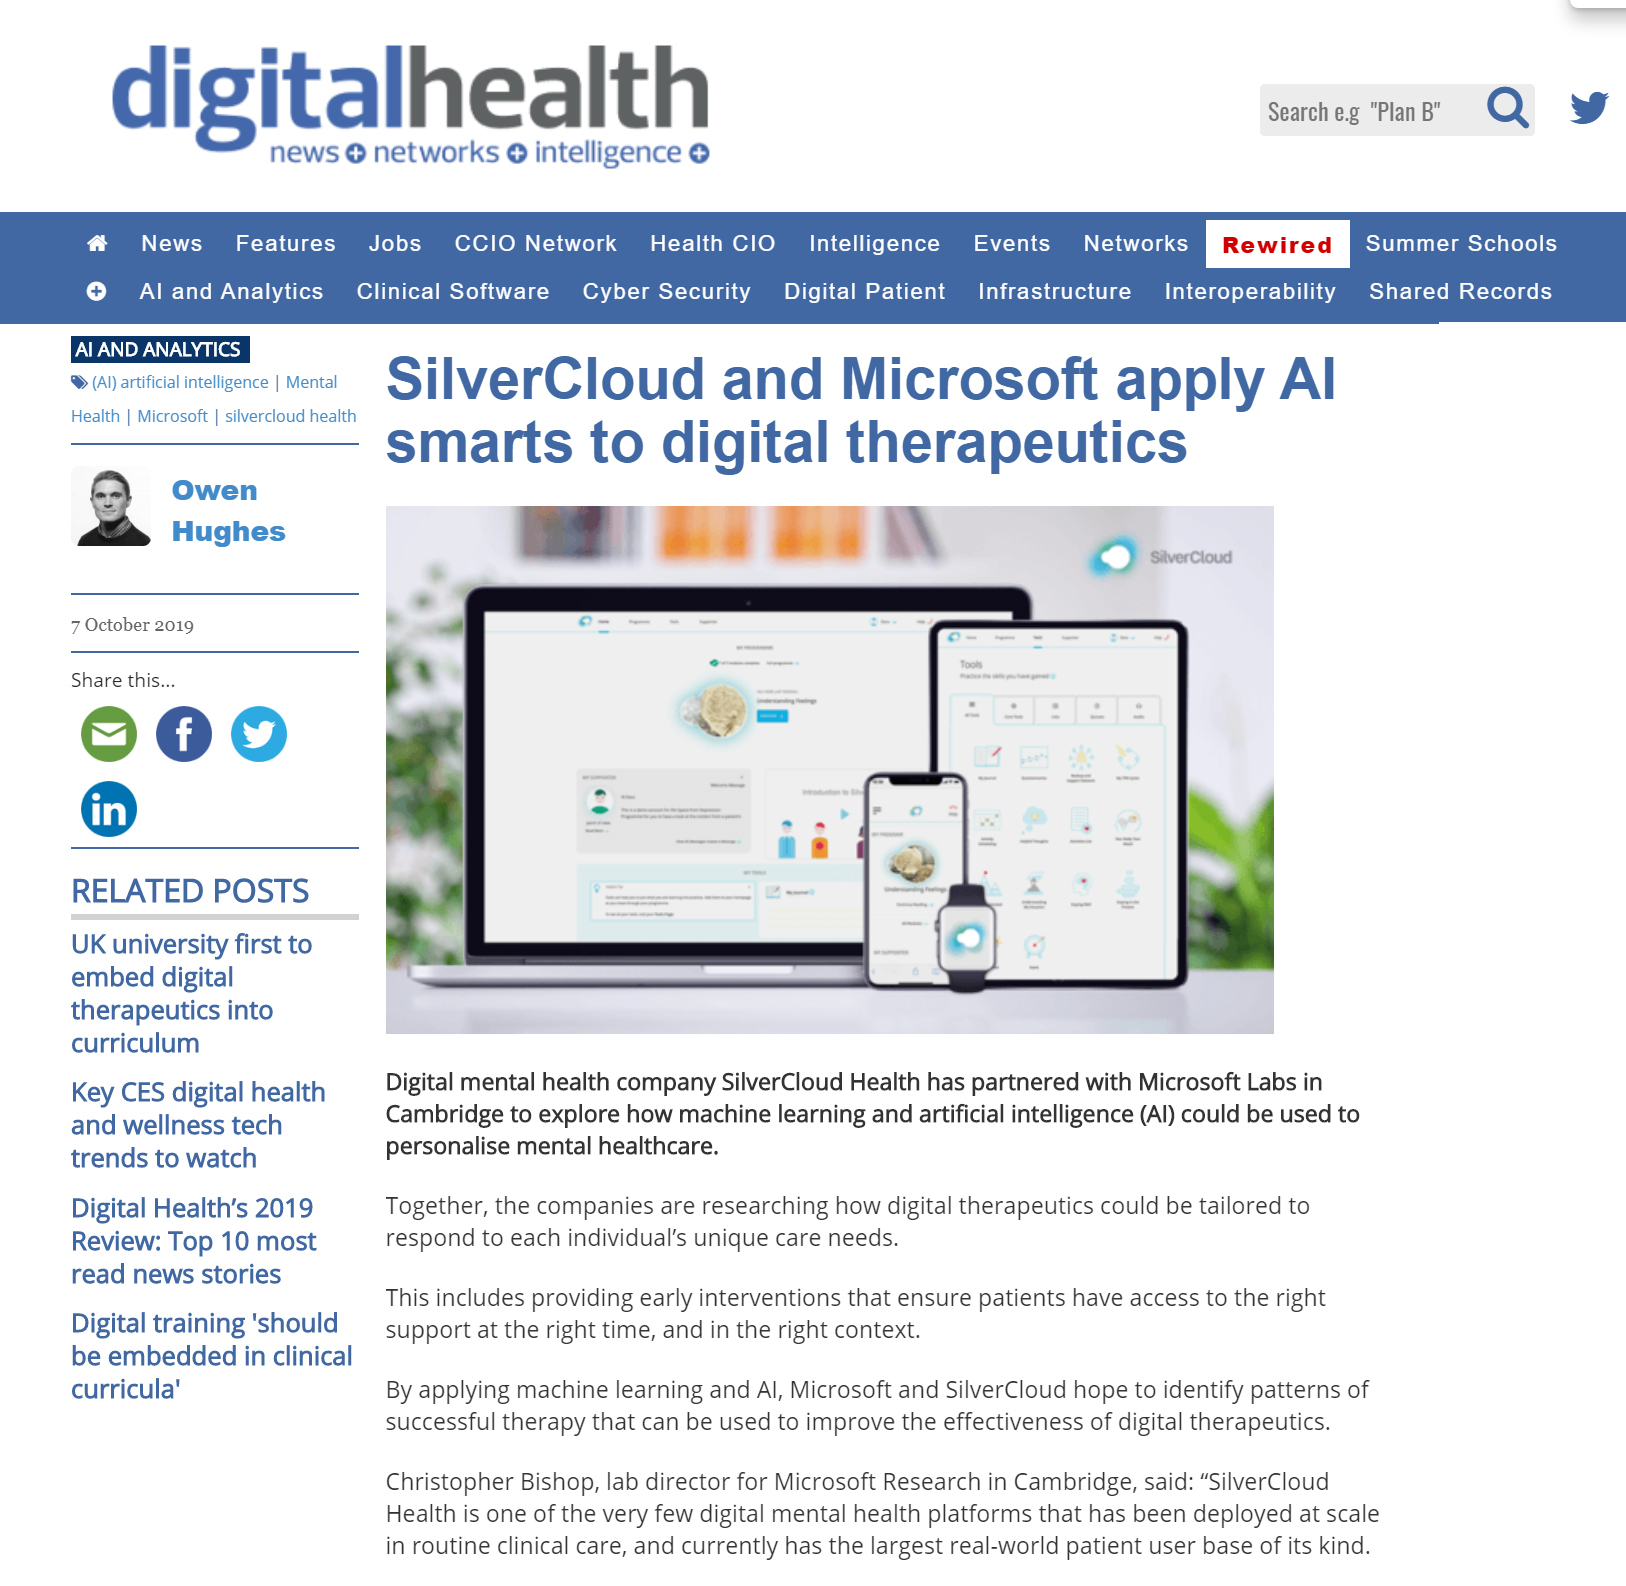 Screenshot of the digital health article about Project Talia